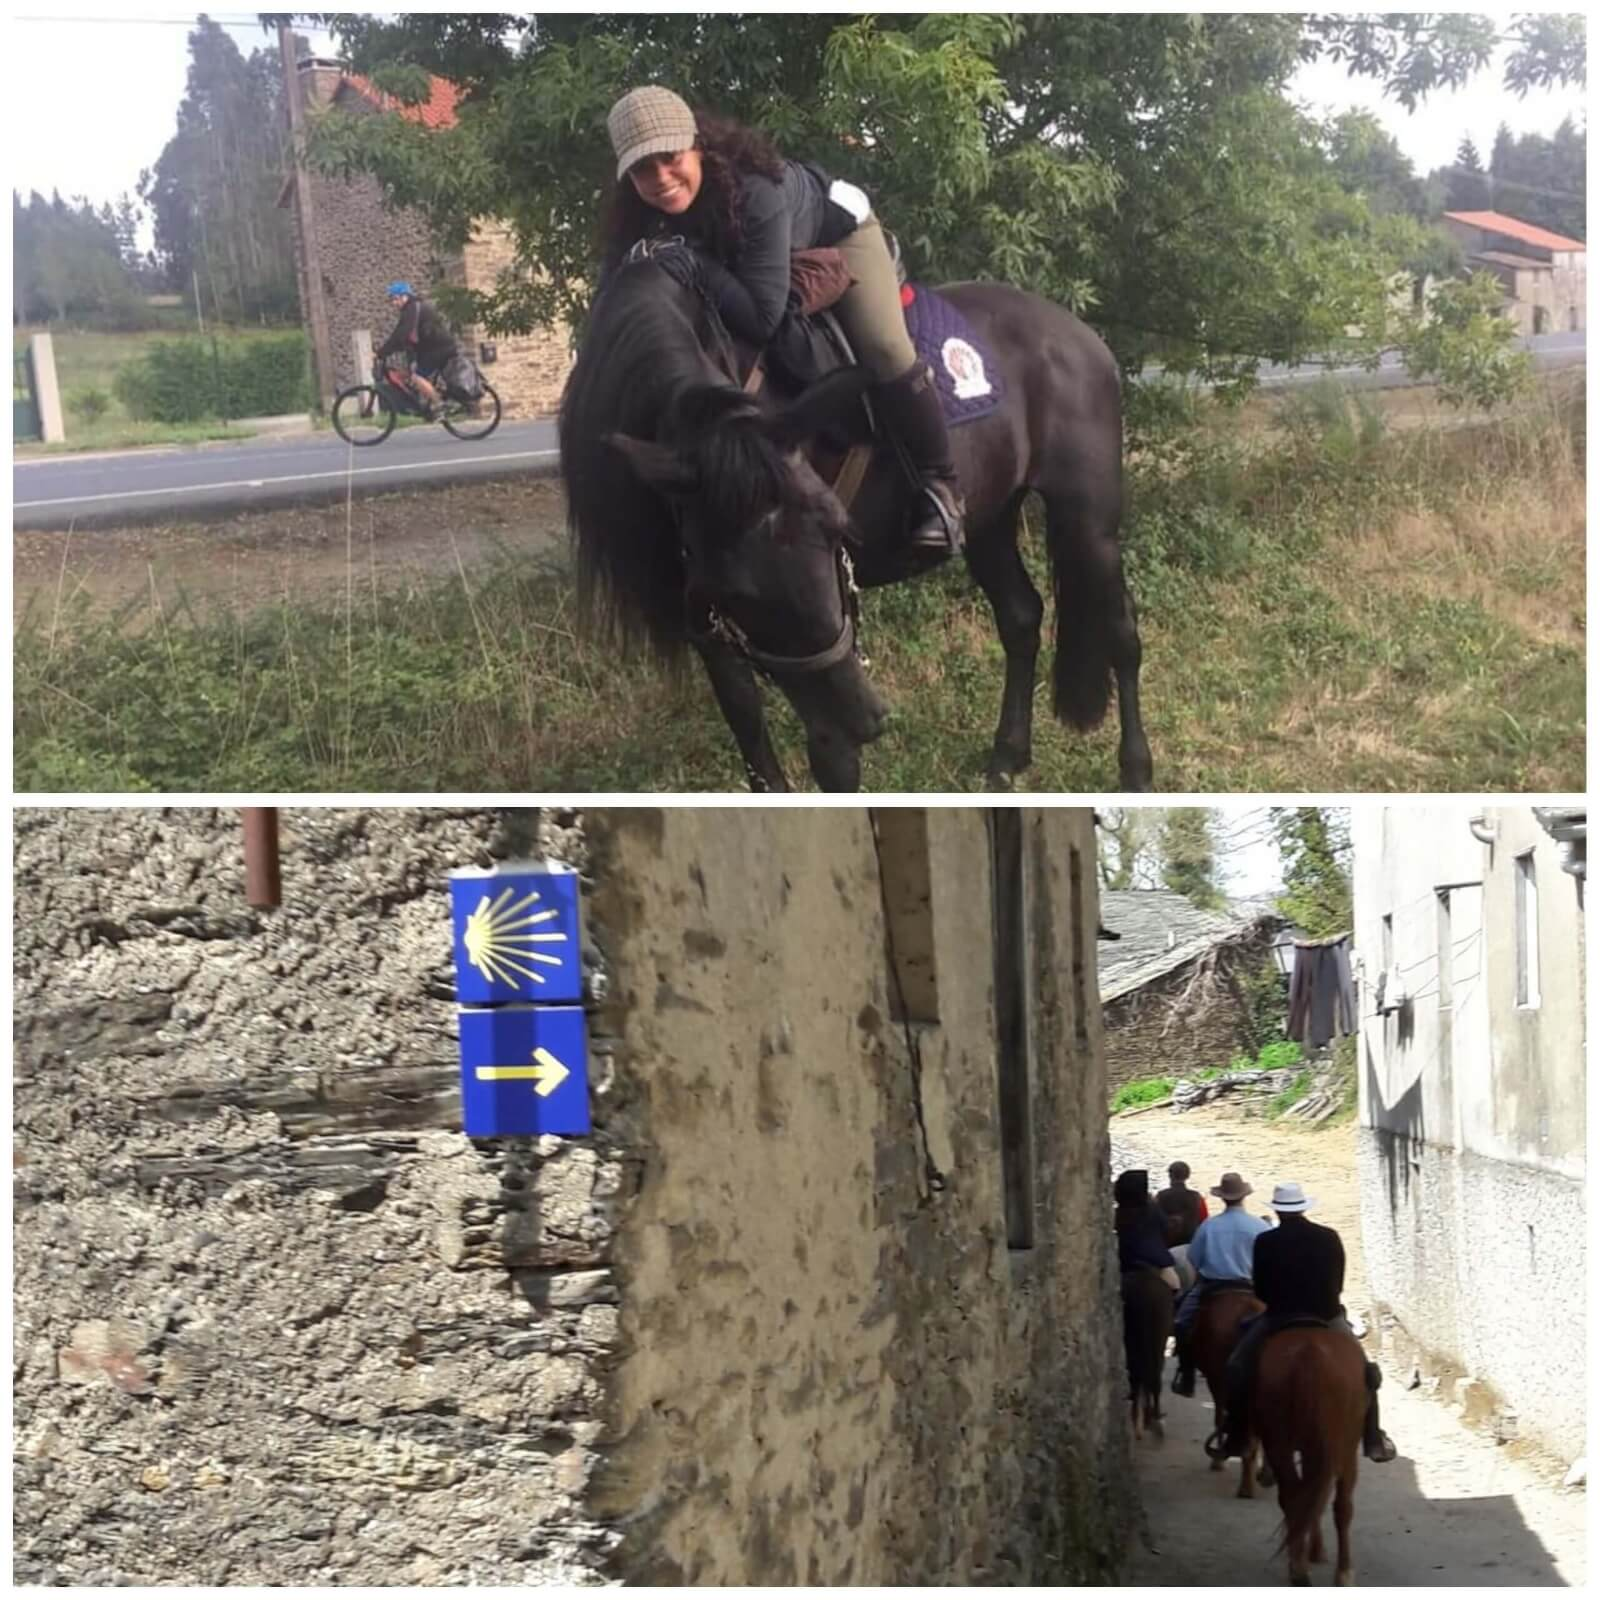 12 Recommended Camino de Santiago Tours 2021 Holy Year - 10. Horse Riding Along the French Trail of Camino de Santiago from O Cebreiro